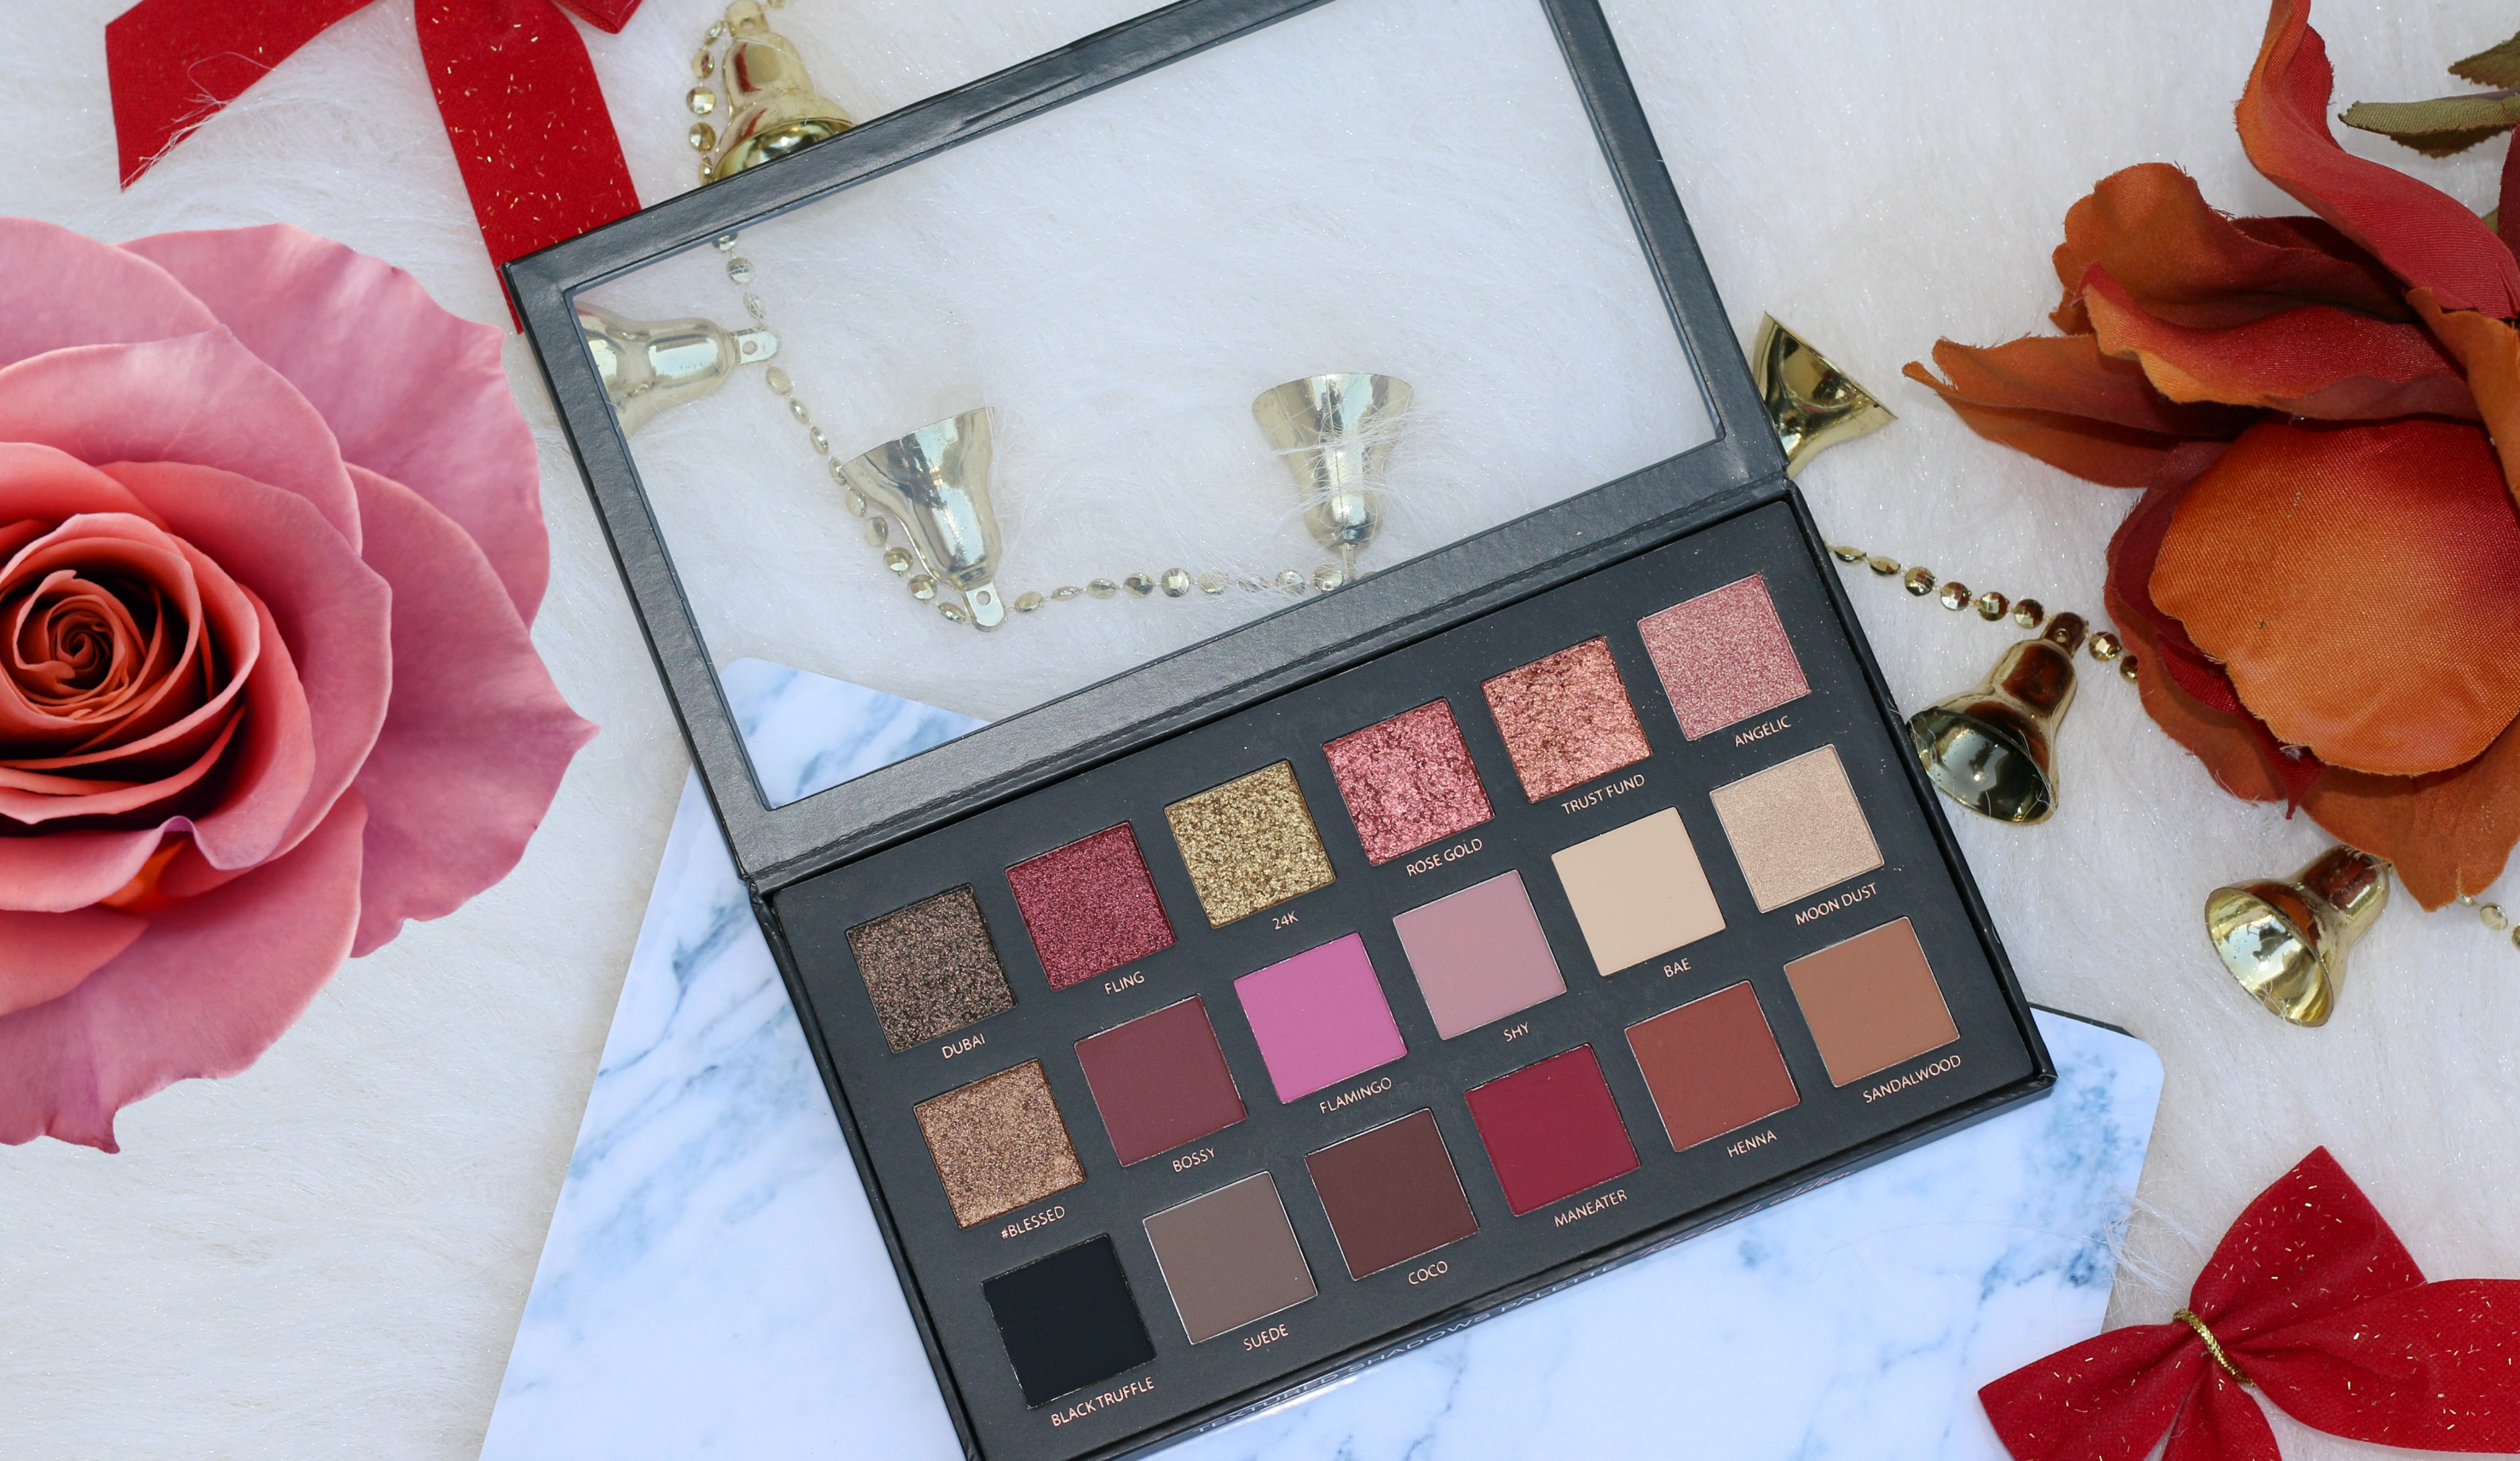 Count Down to Christmas – Huda Beauty Rose Gold Edition  Eyeshadow Palette | Review, Swatches & FOTD